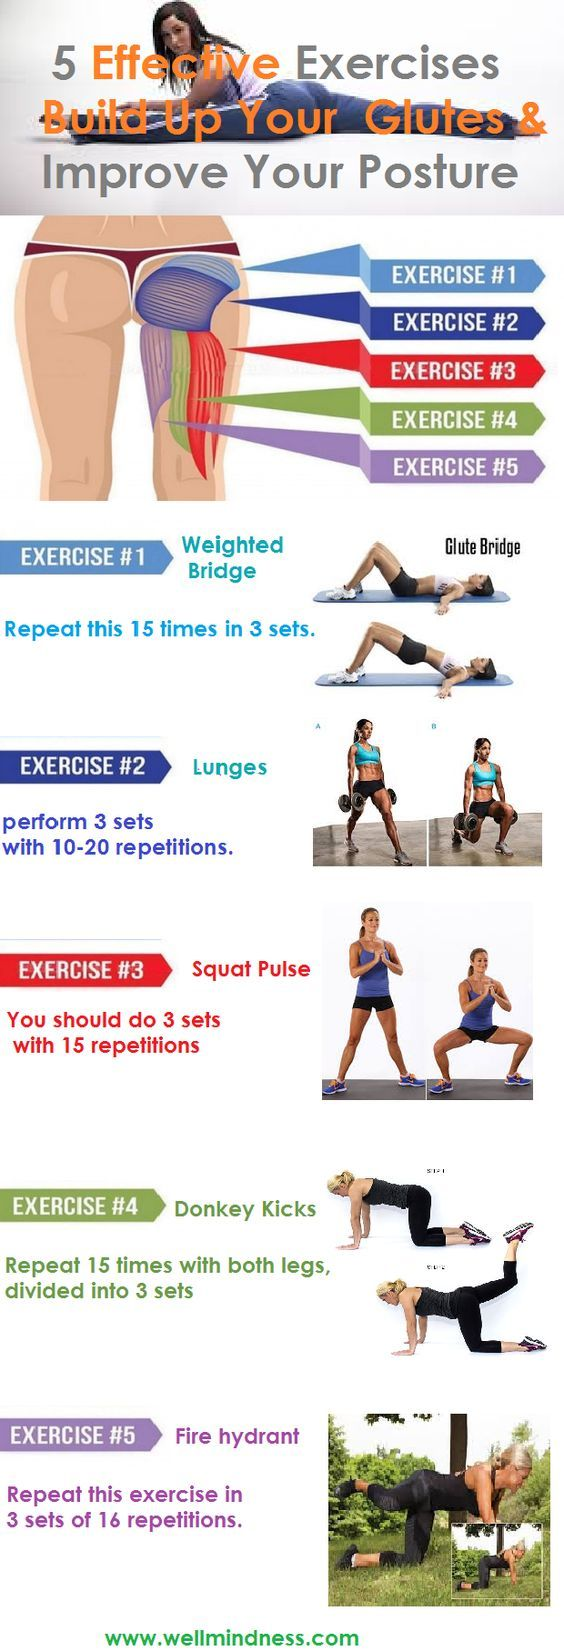 These muscles actually play an essential role in optimizing the strength of the legs, stabilize the pelvis, and support the spine.